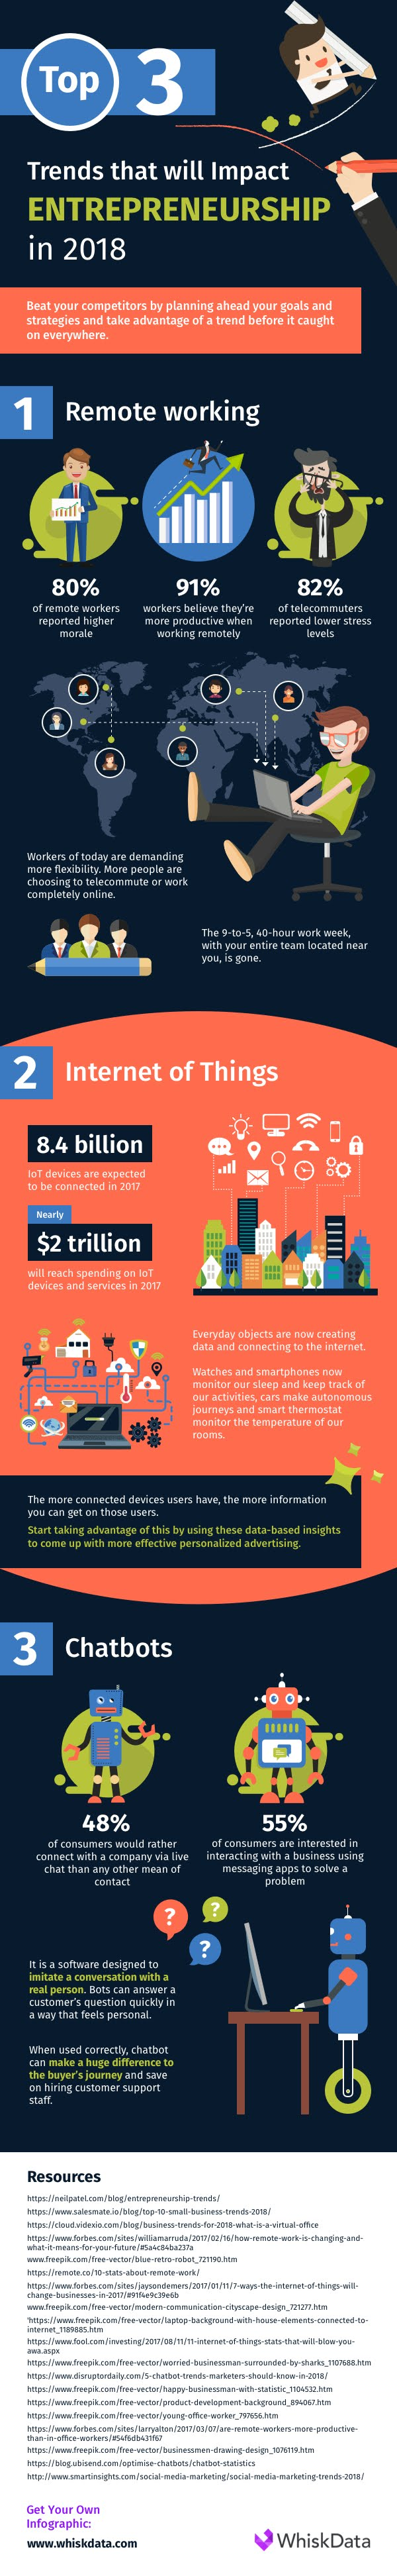 Top 3 Trends That Will Impact Entrepreneurship in 2018 - #infographic